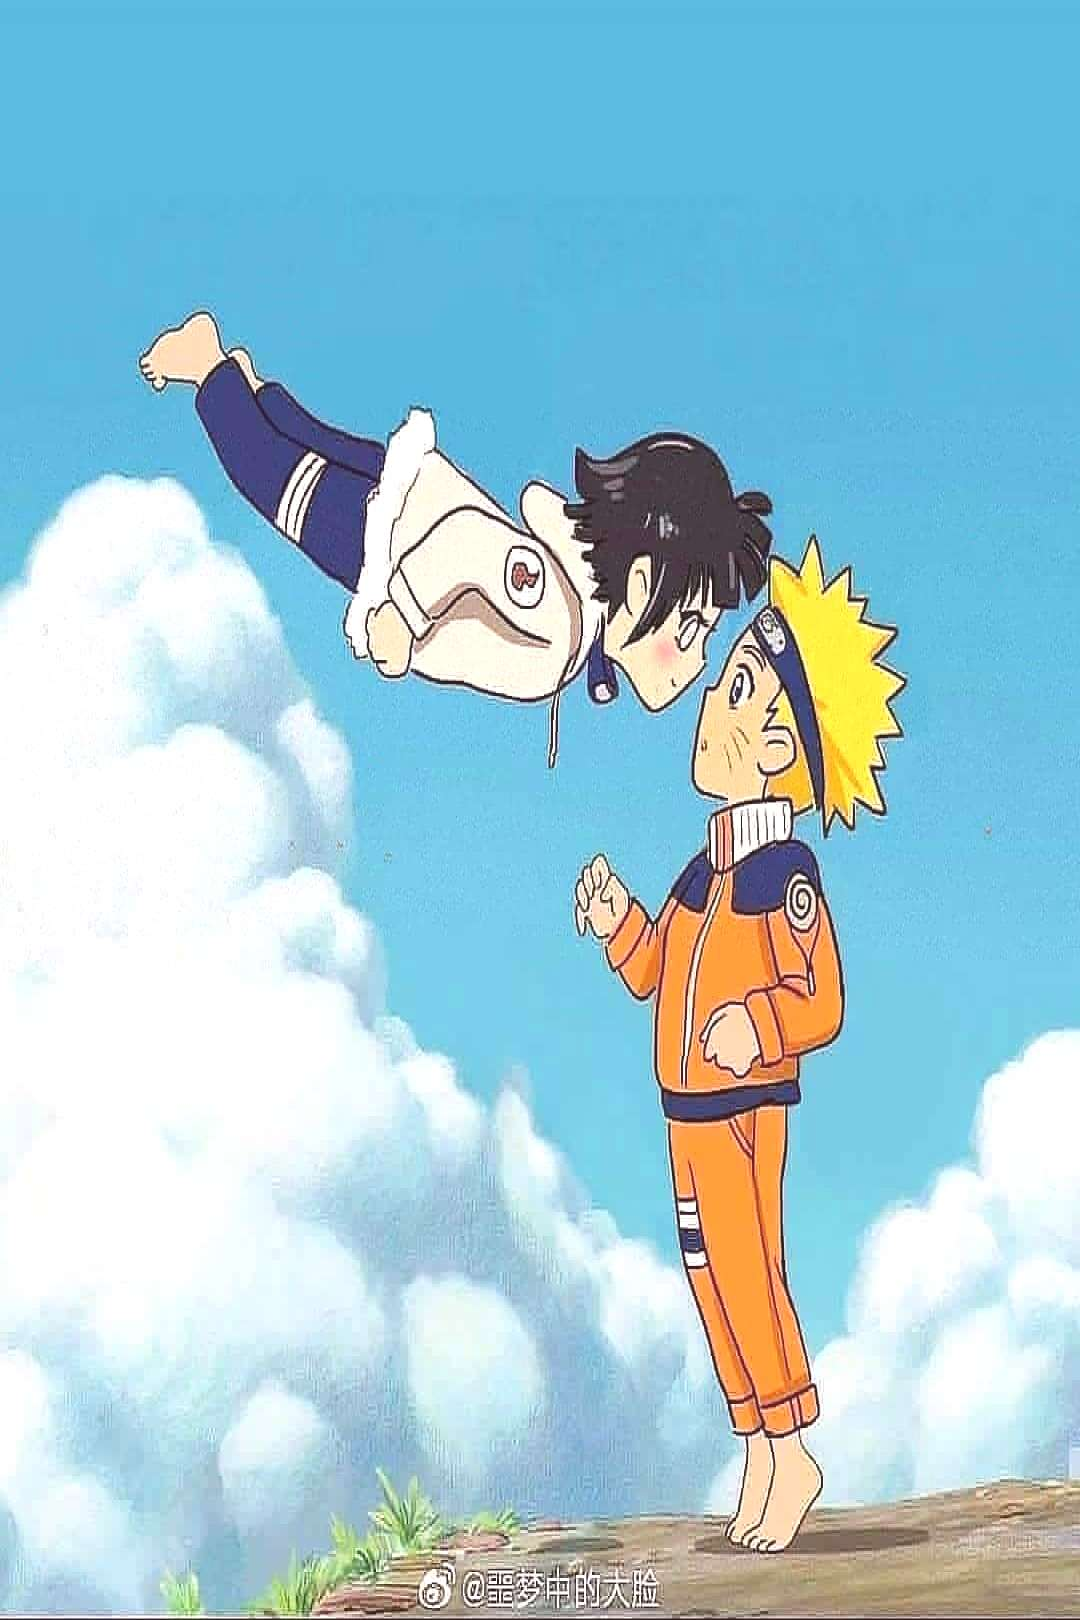 Favourite ship from this pictures? . . Kawaiii . . * Dm for busin